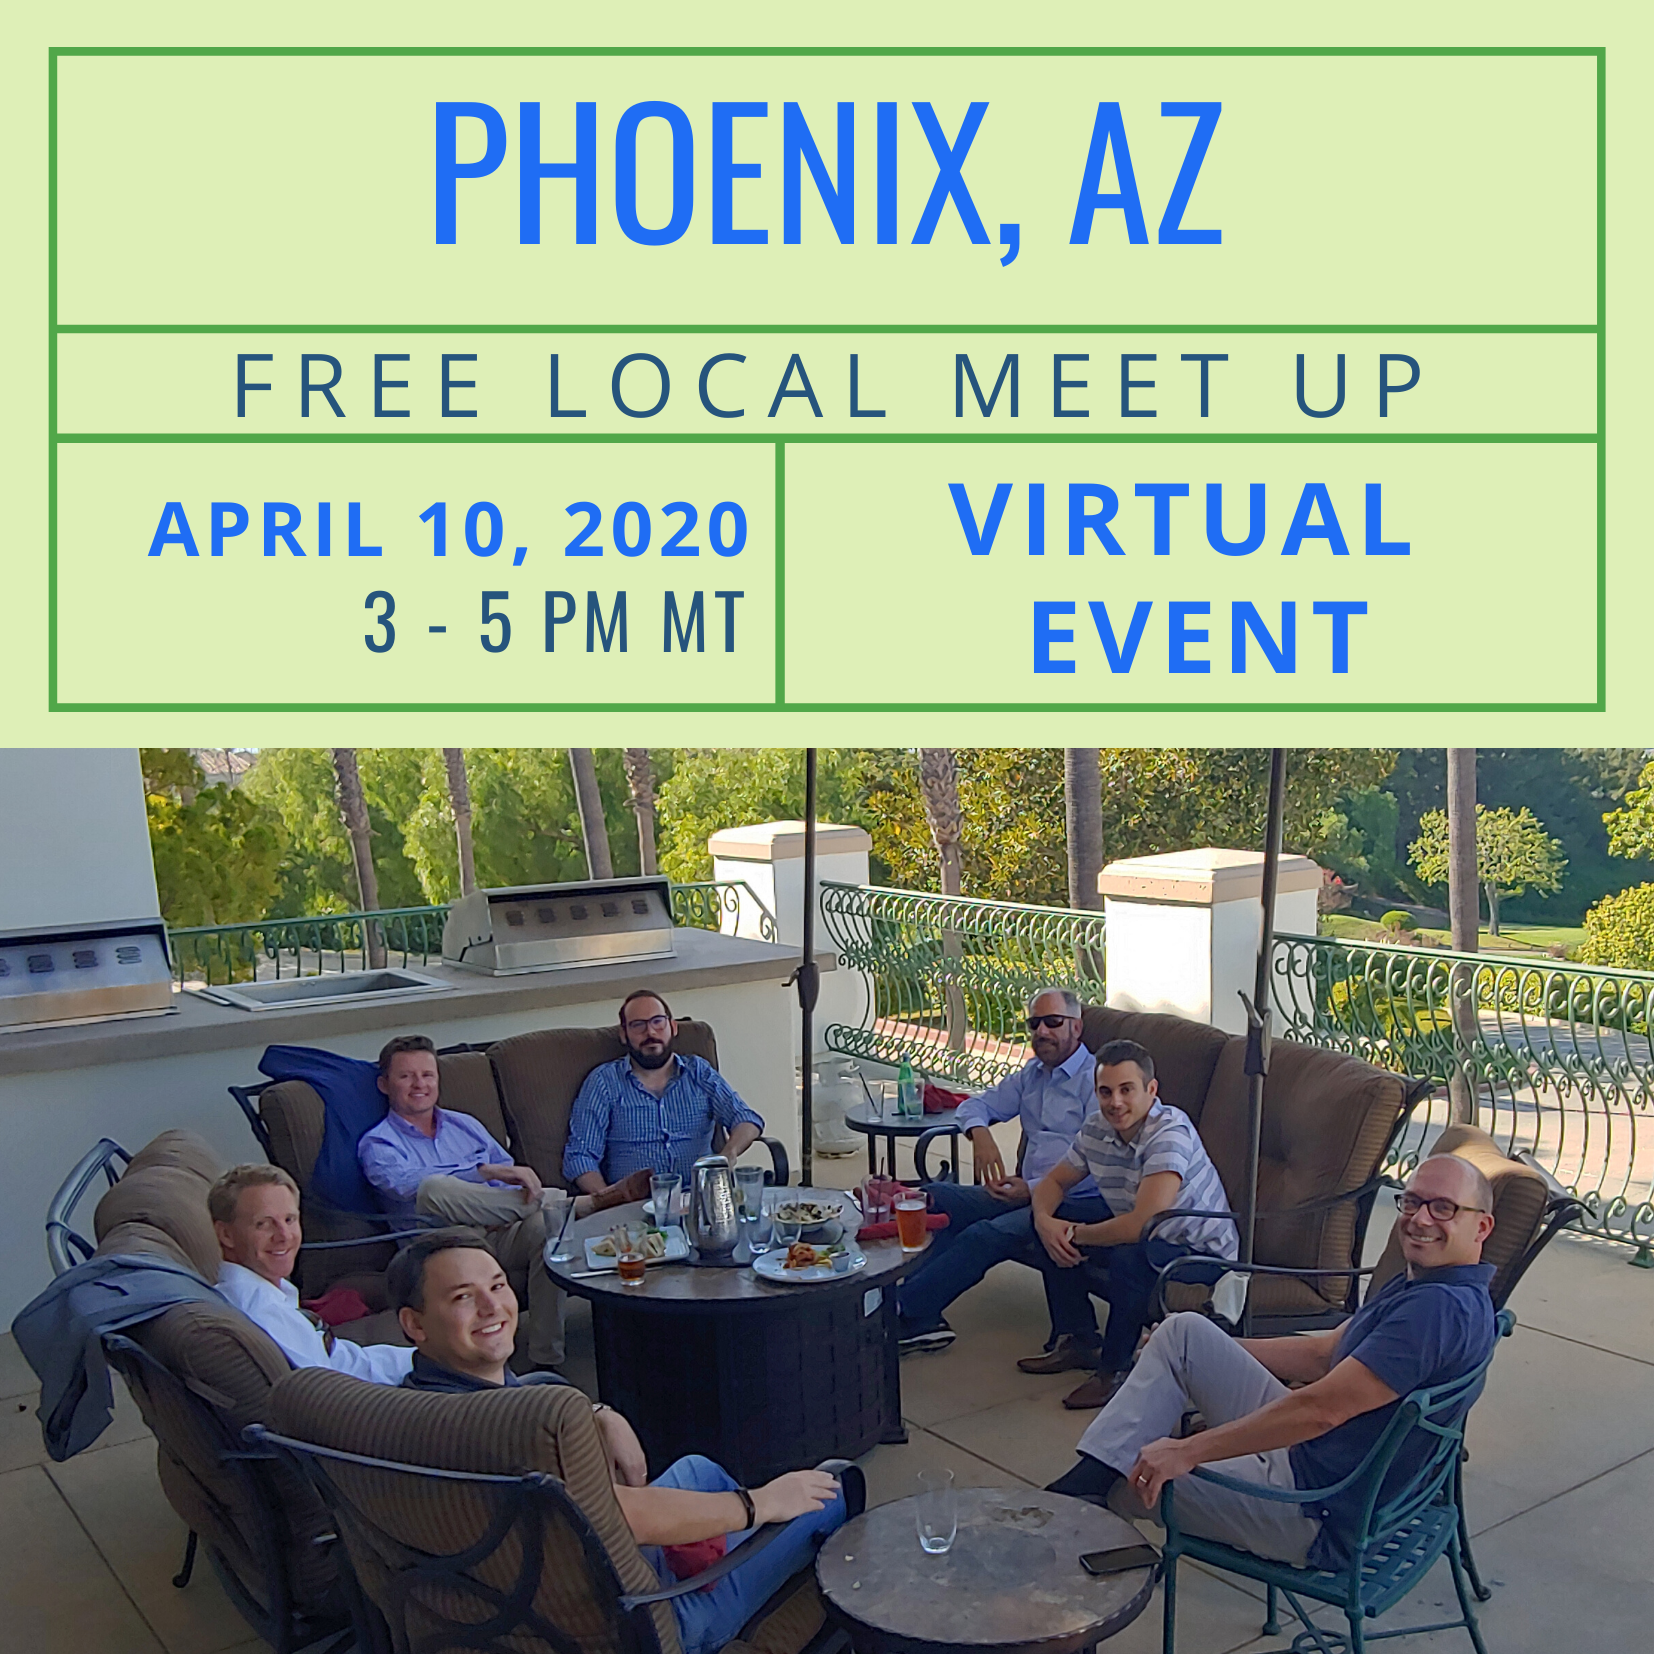 Free Local Meet Up in Phoenix on Friday, April 10